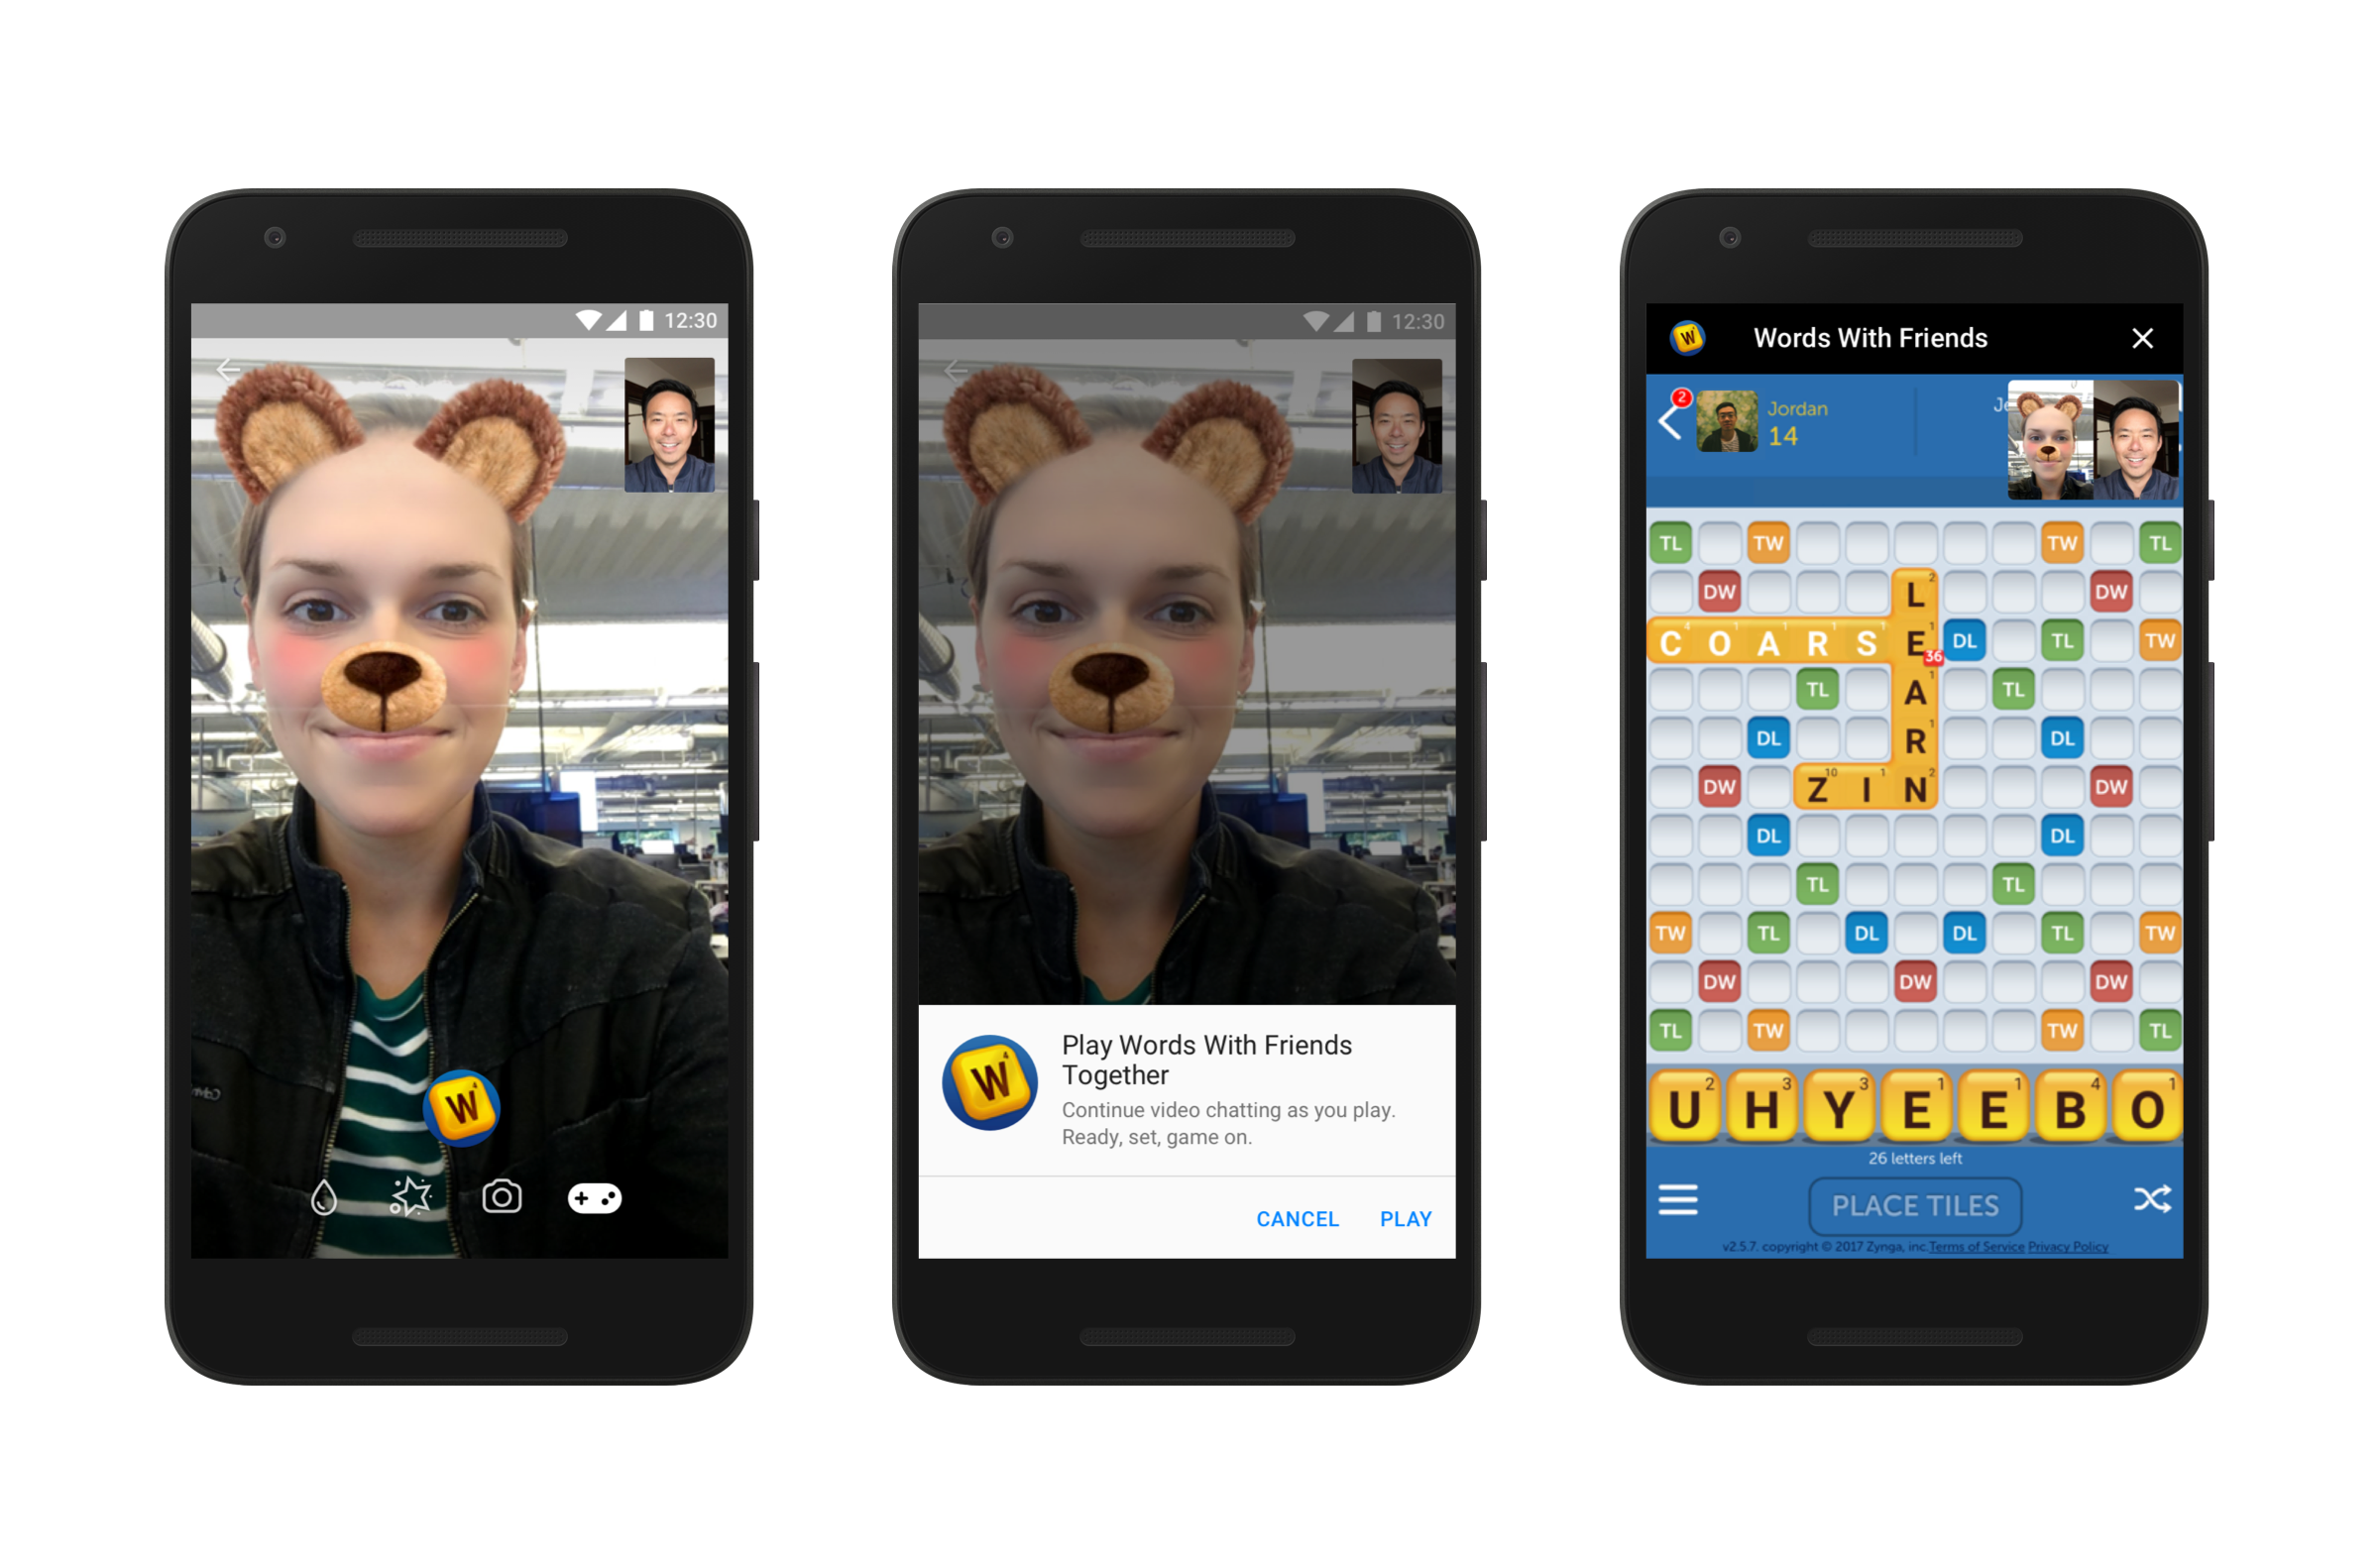 Facebook Messenger Instant Games to Get Live Streaming, Video Chats, and More